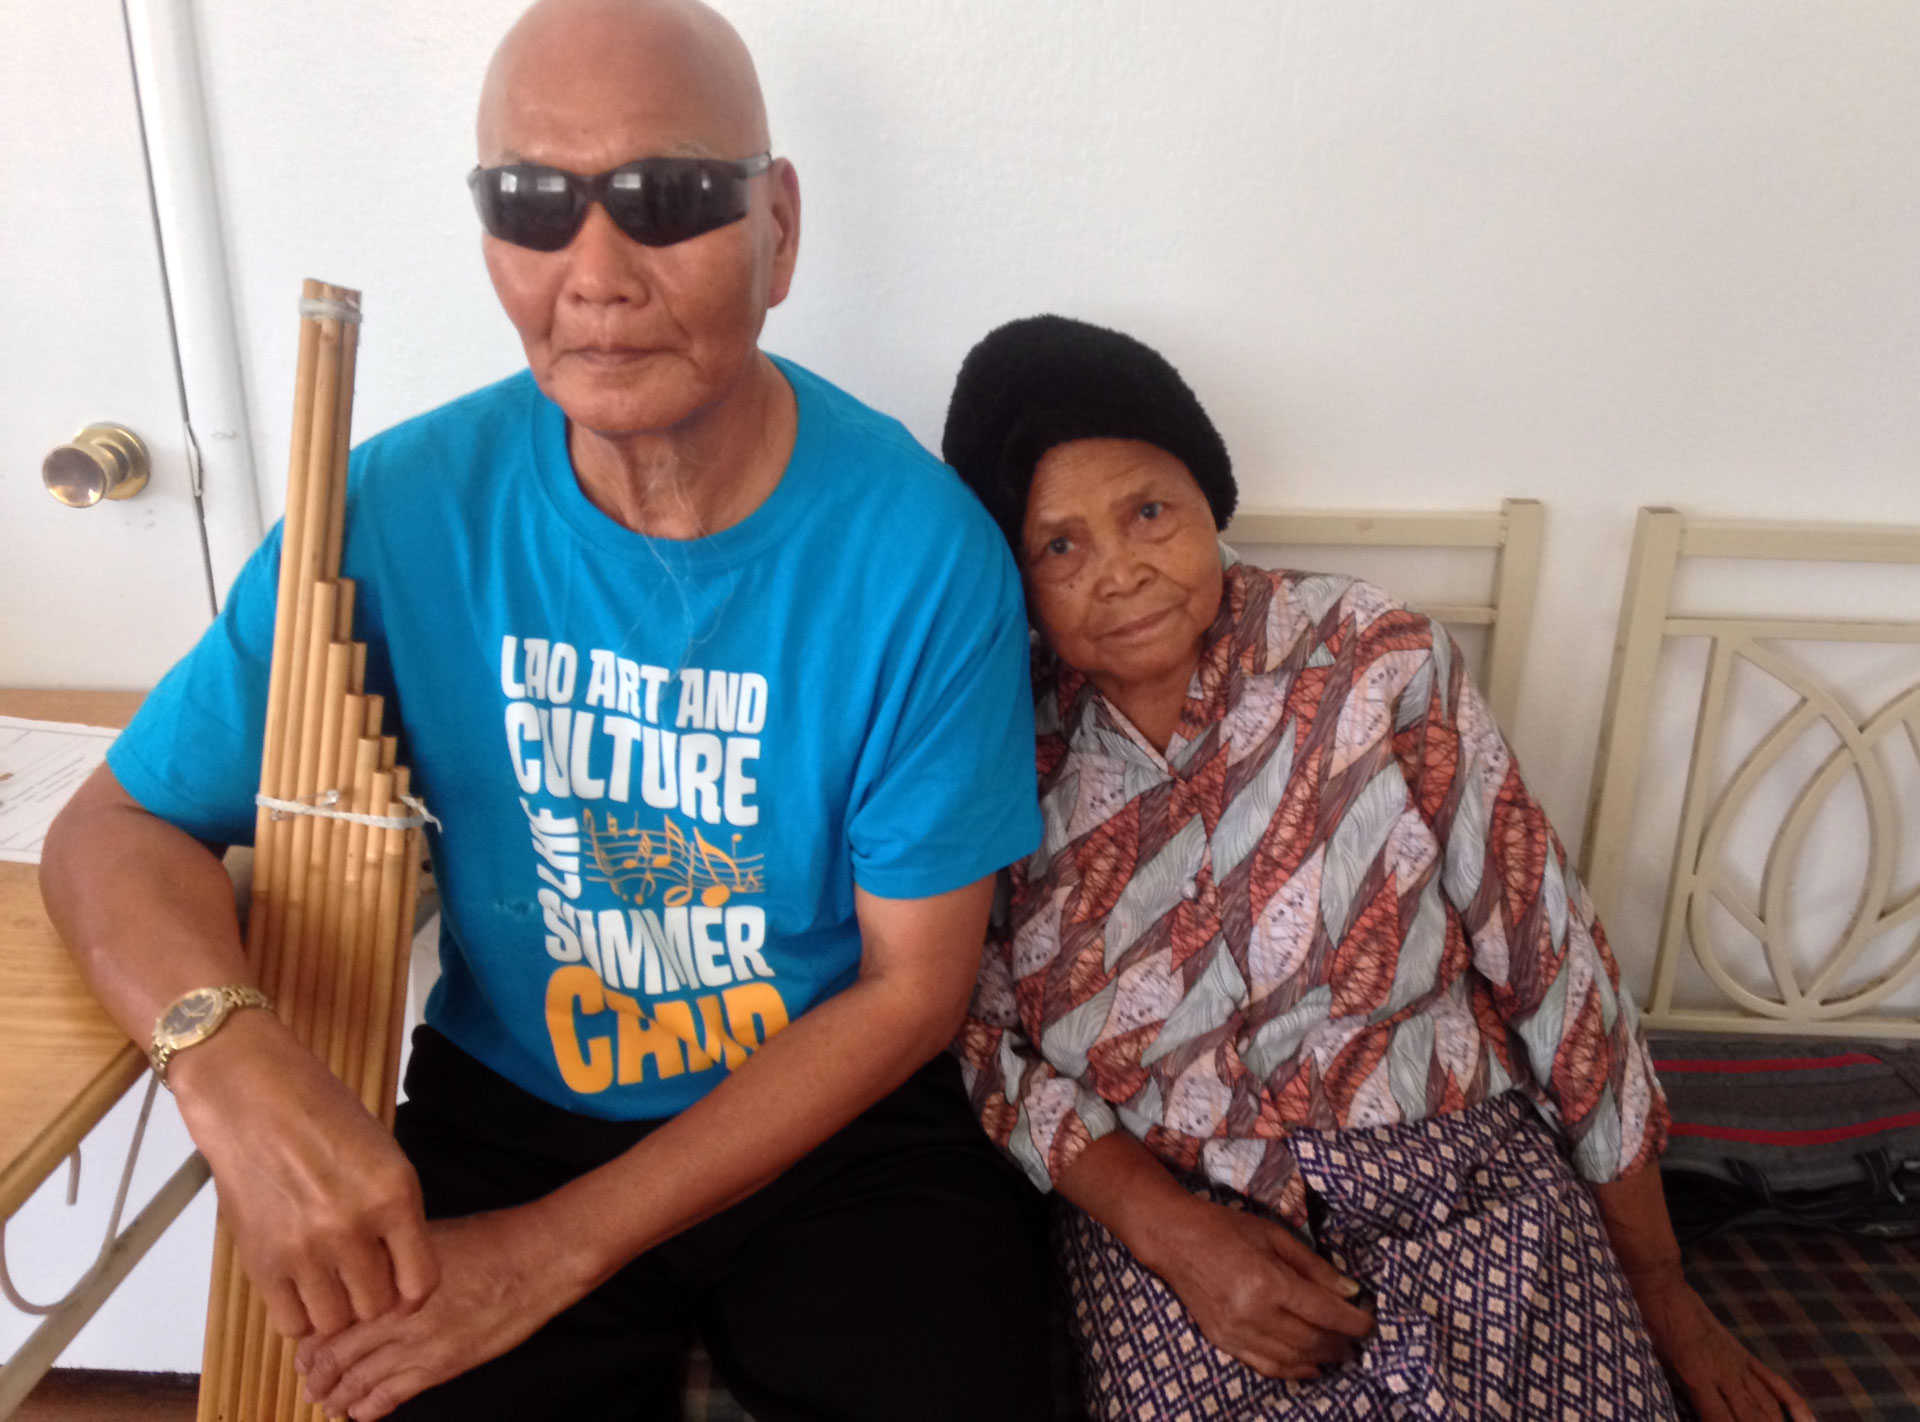 Bounxeung Synanonh (L) is a master of the khaen, a traditional Laotian bamboo mouth organ. He met his wife Kham Souvanakhyly (R) in Fresno. She says she doesn't care if Synanonh can't see her because she knows he loves her.